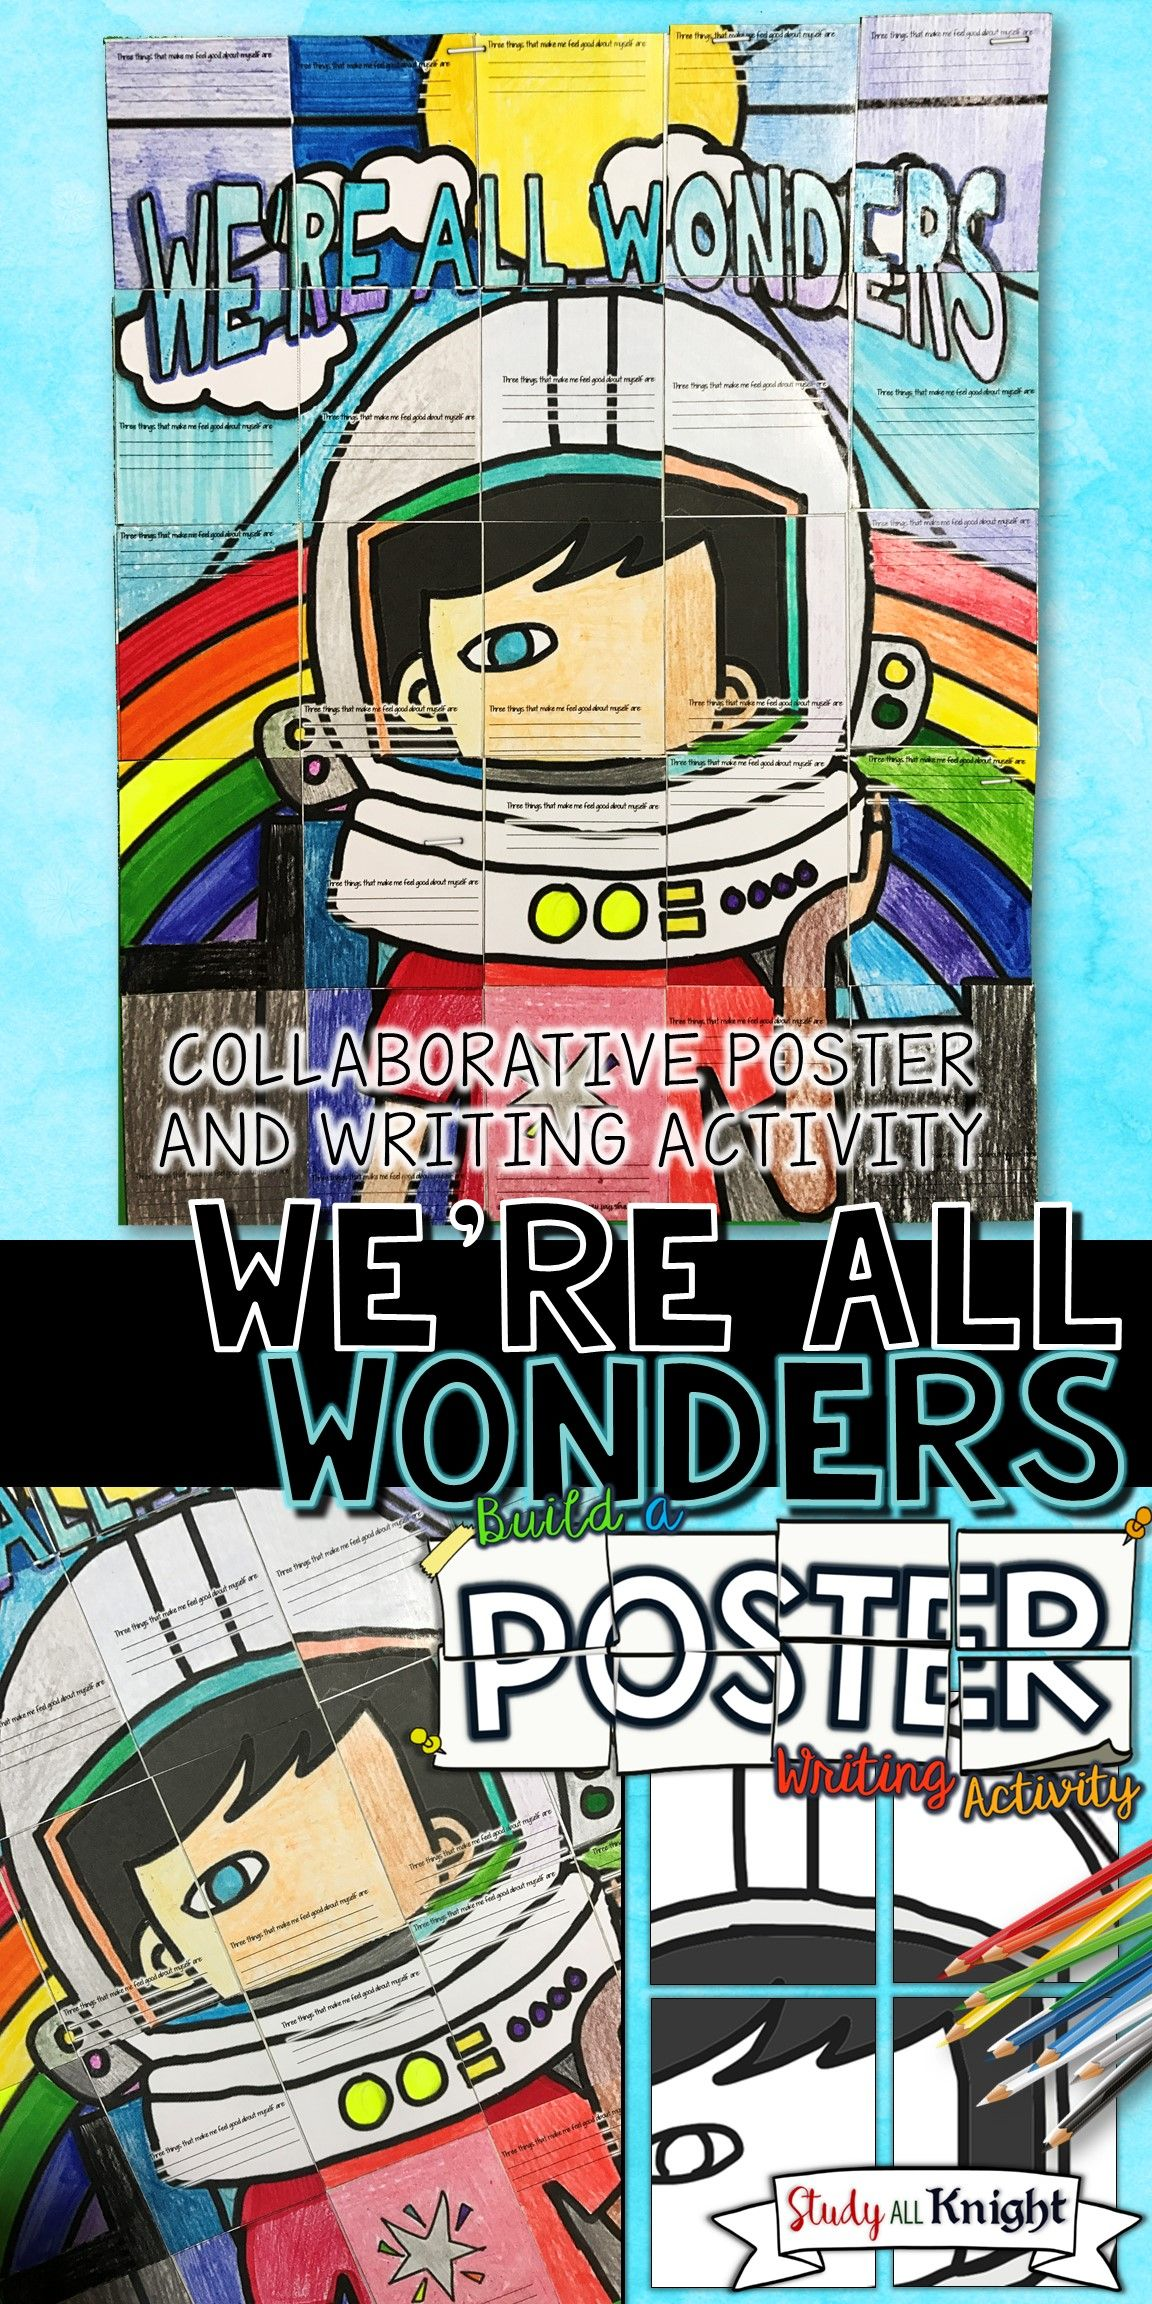 We Re All Wonders By R J Palacio Wonder Writing Activity